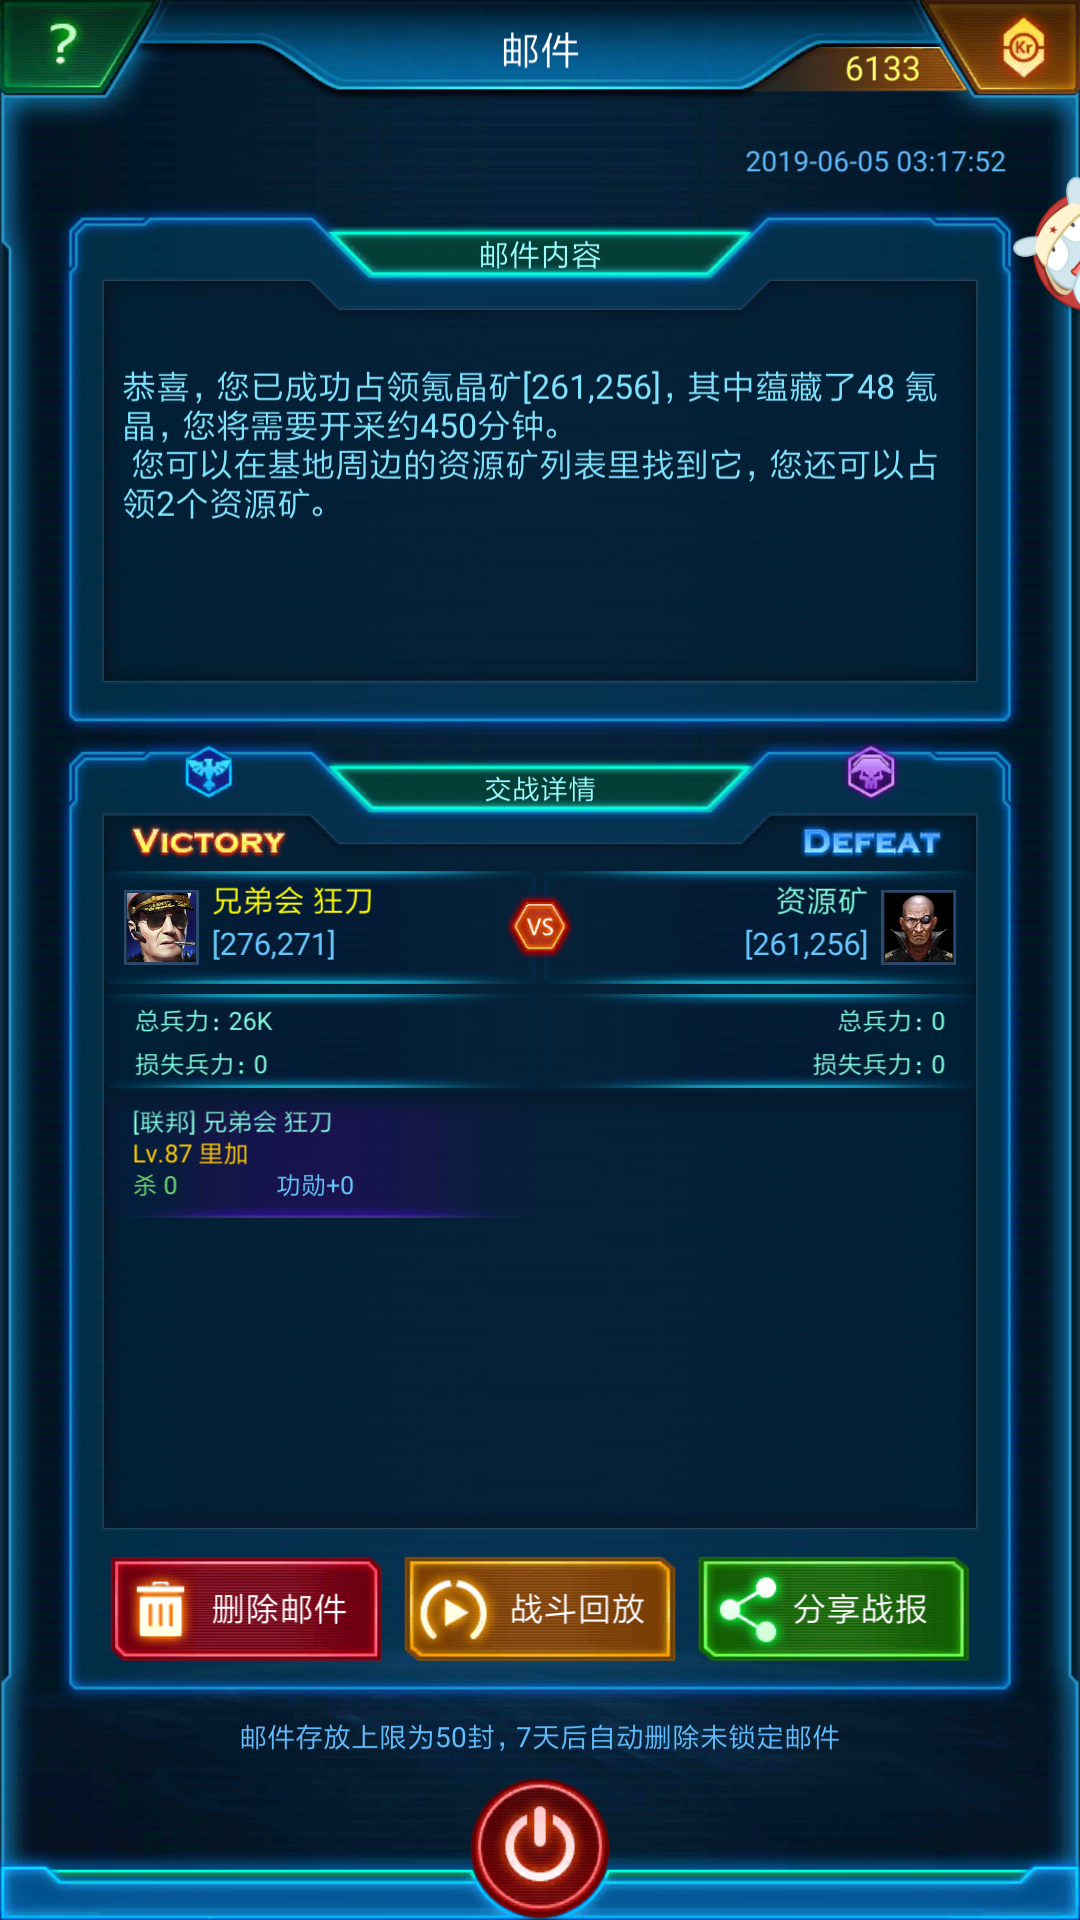 Screenshot_2019-06-05-08-30-09-690_com.tencent.tmgp.p16s.png